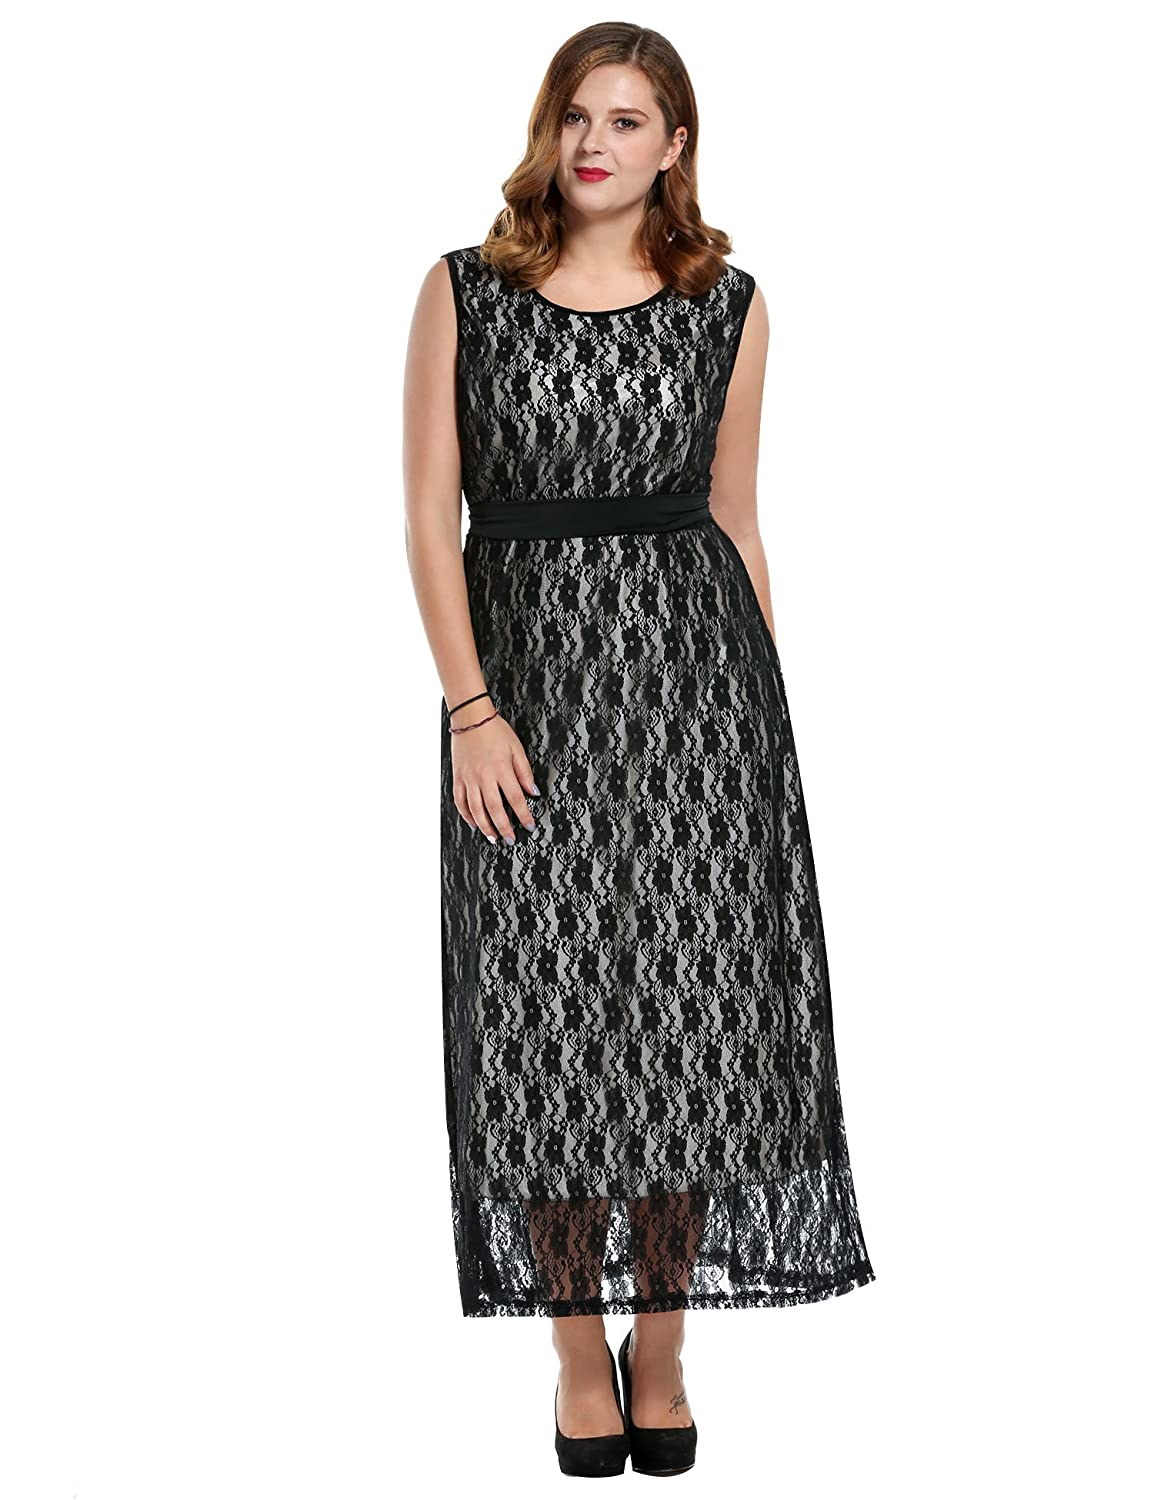 Meaneor Women Plus Size Floral Lace Belted Elegant Homecoming Maxi Dress, 1X-4X #MAH005761